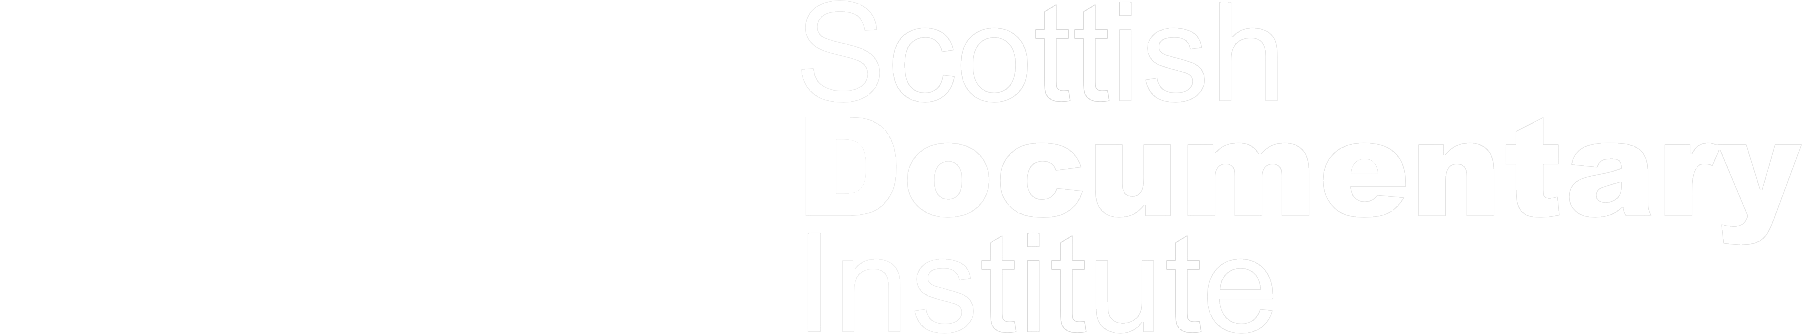 Creative Scotland and Scottish Documentary Institute logo